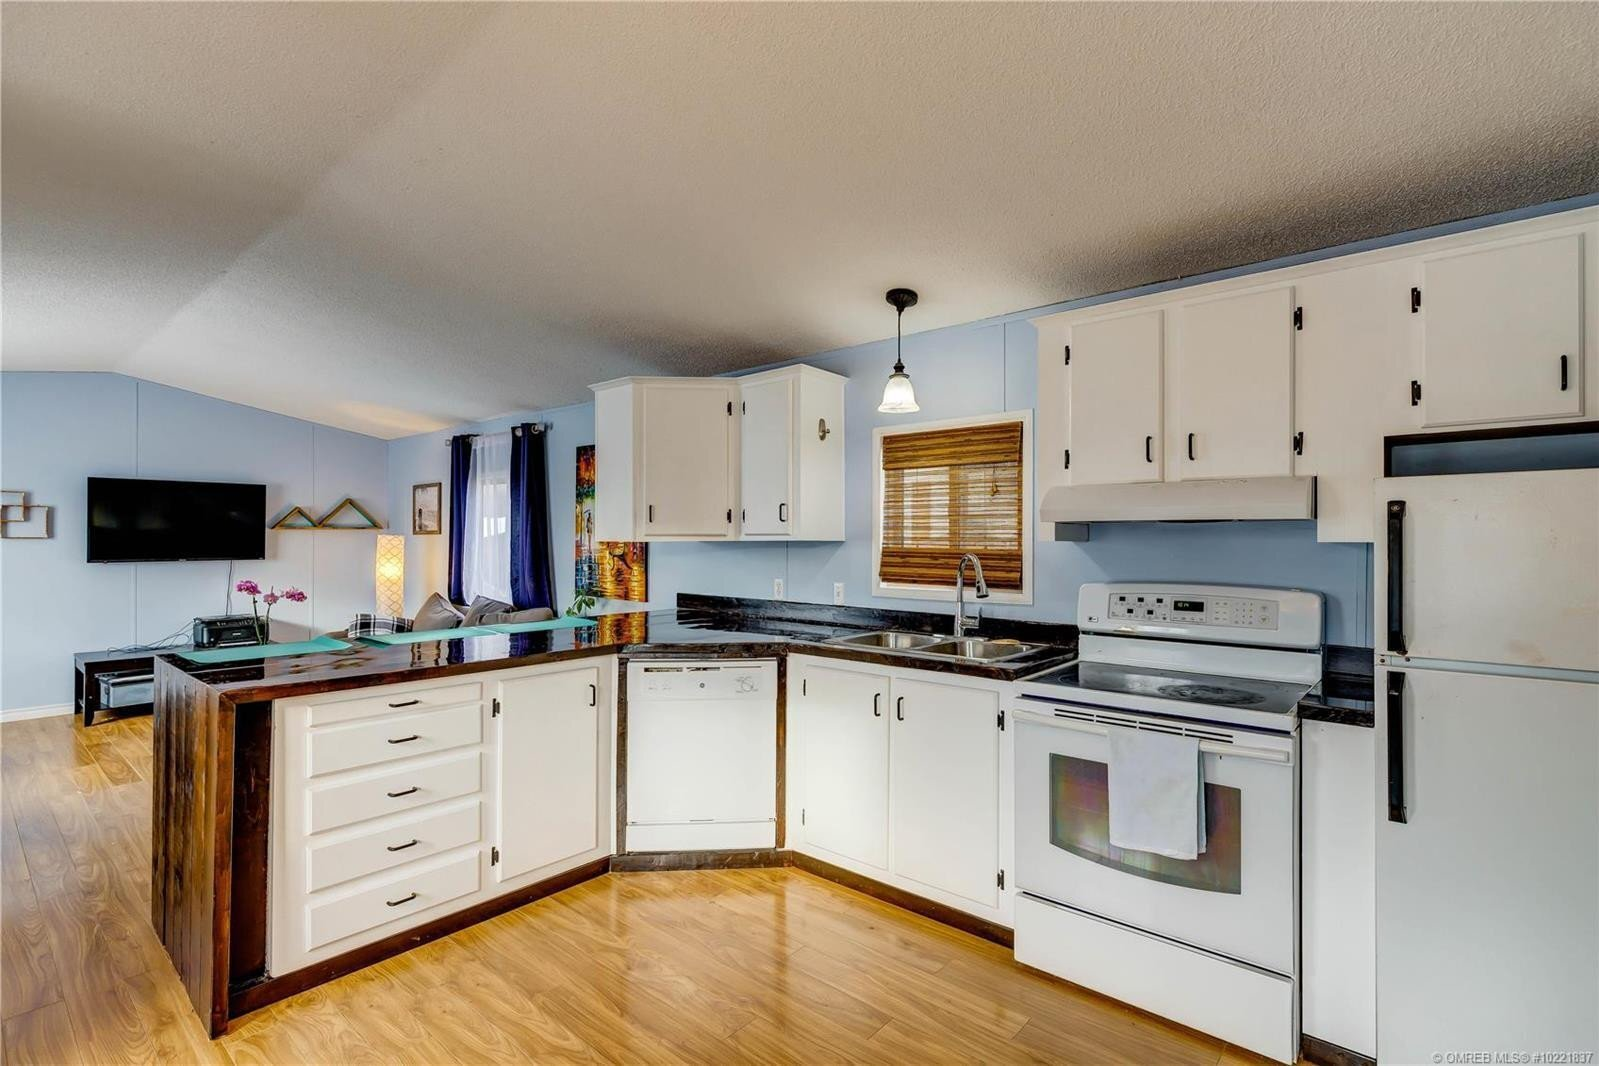 Home for sale at 3270 Shannon Lake Rd Unit 9 West Kelowna British Columbia - MLS: 10221837